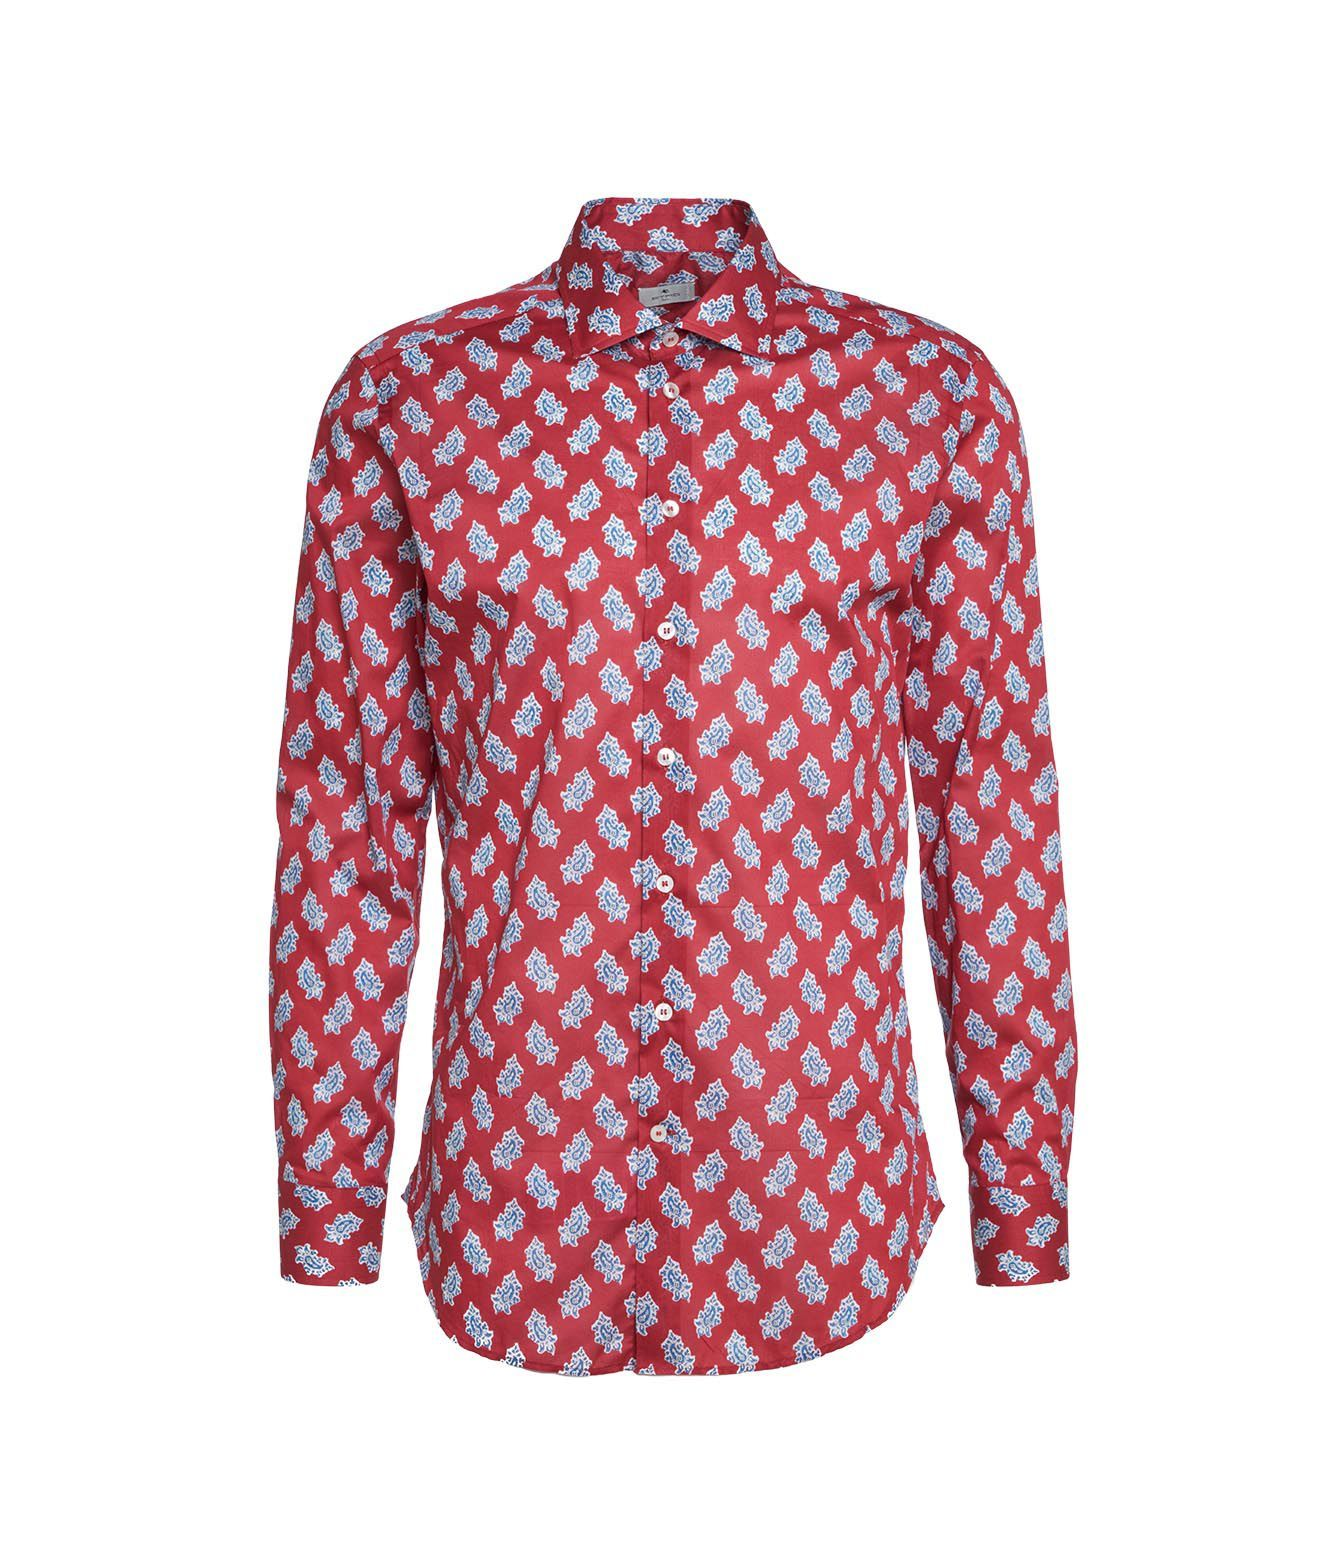 Etro Shirts ETRO MEN'S 11451476311600 RED OTHER MATERIALS SHIRT